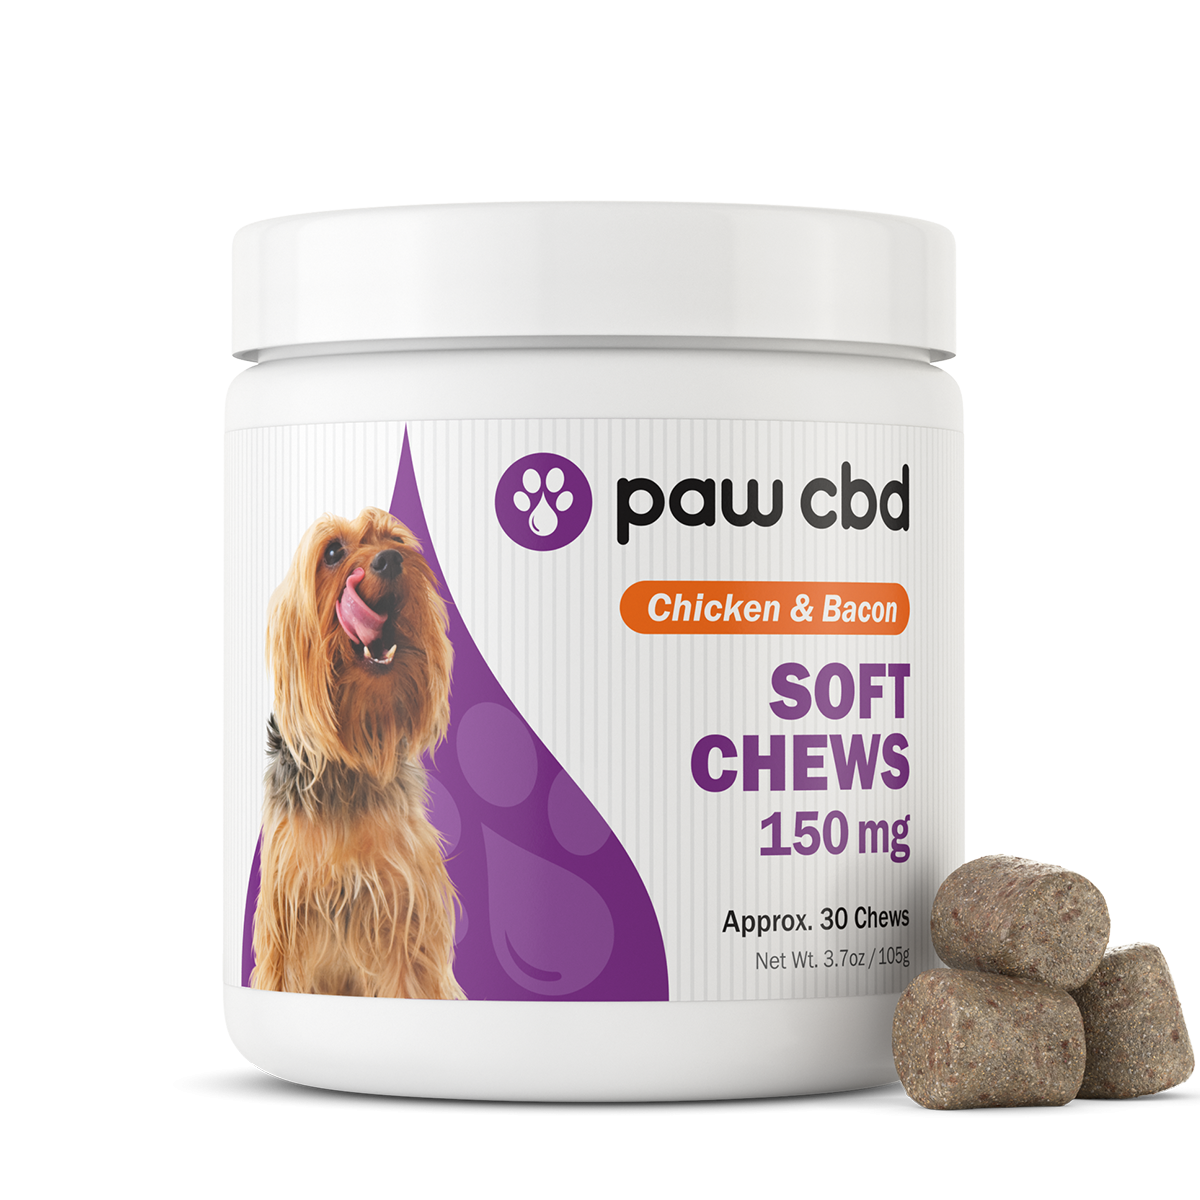 Soft Chews - For Dogs